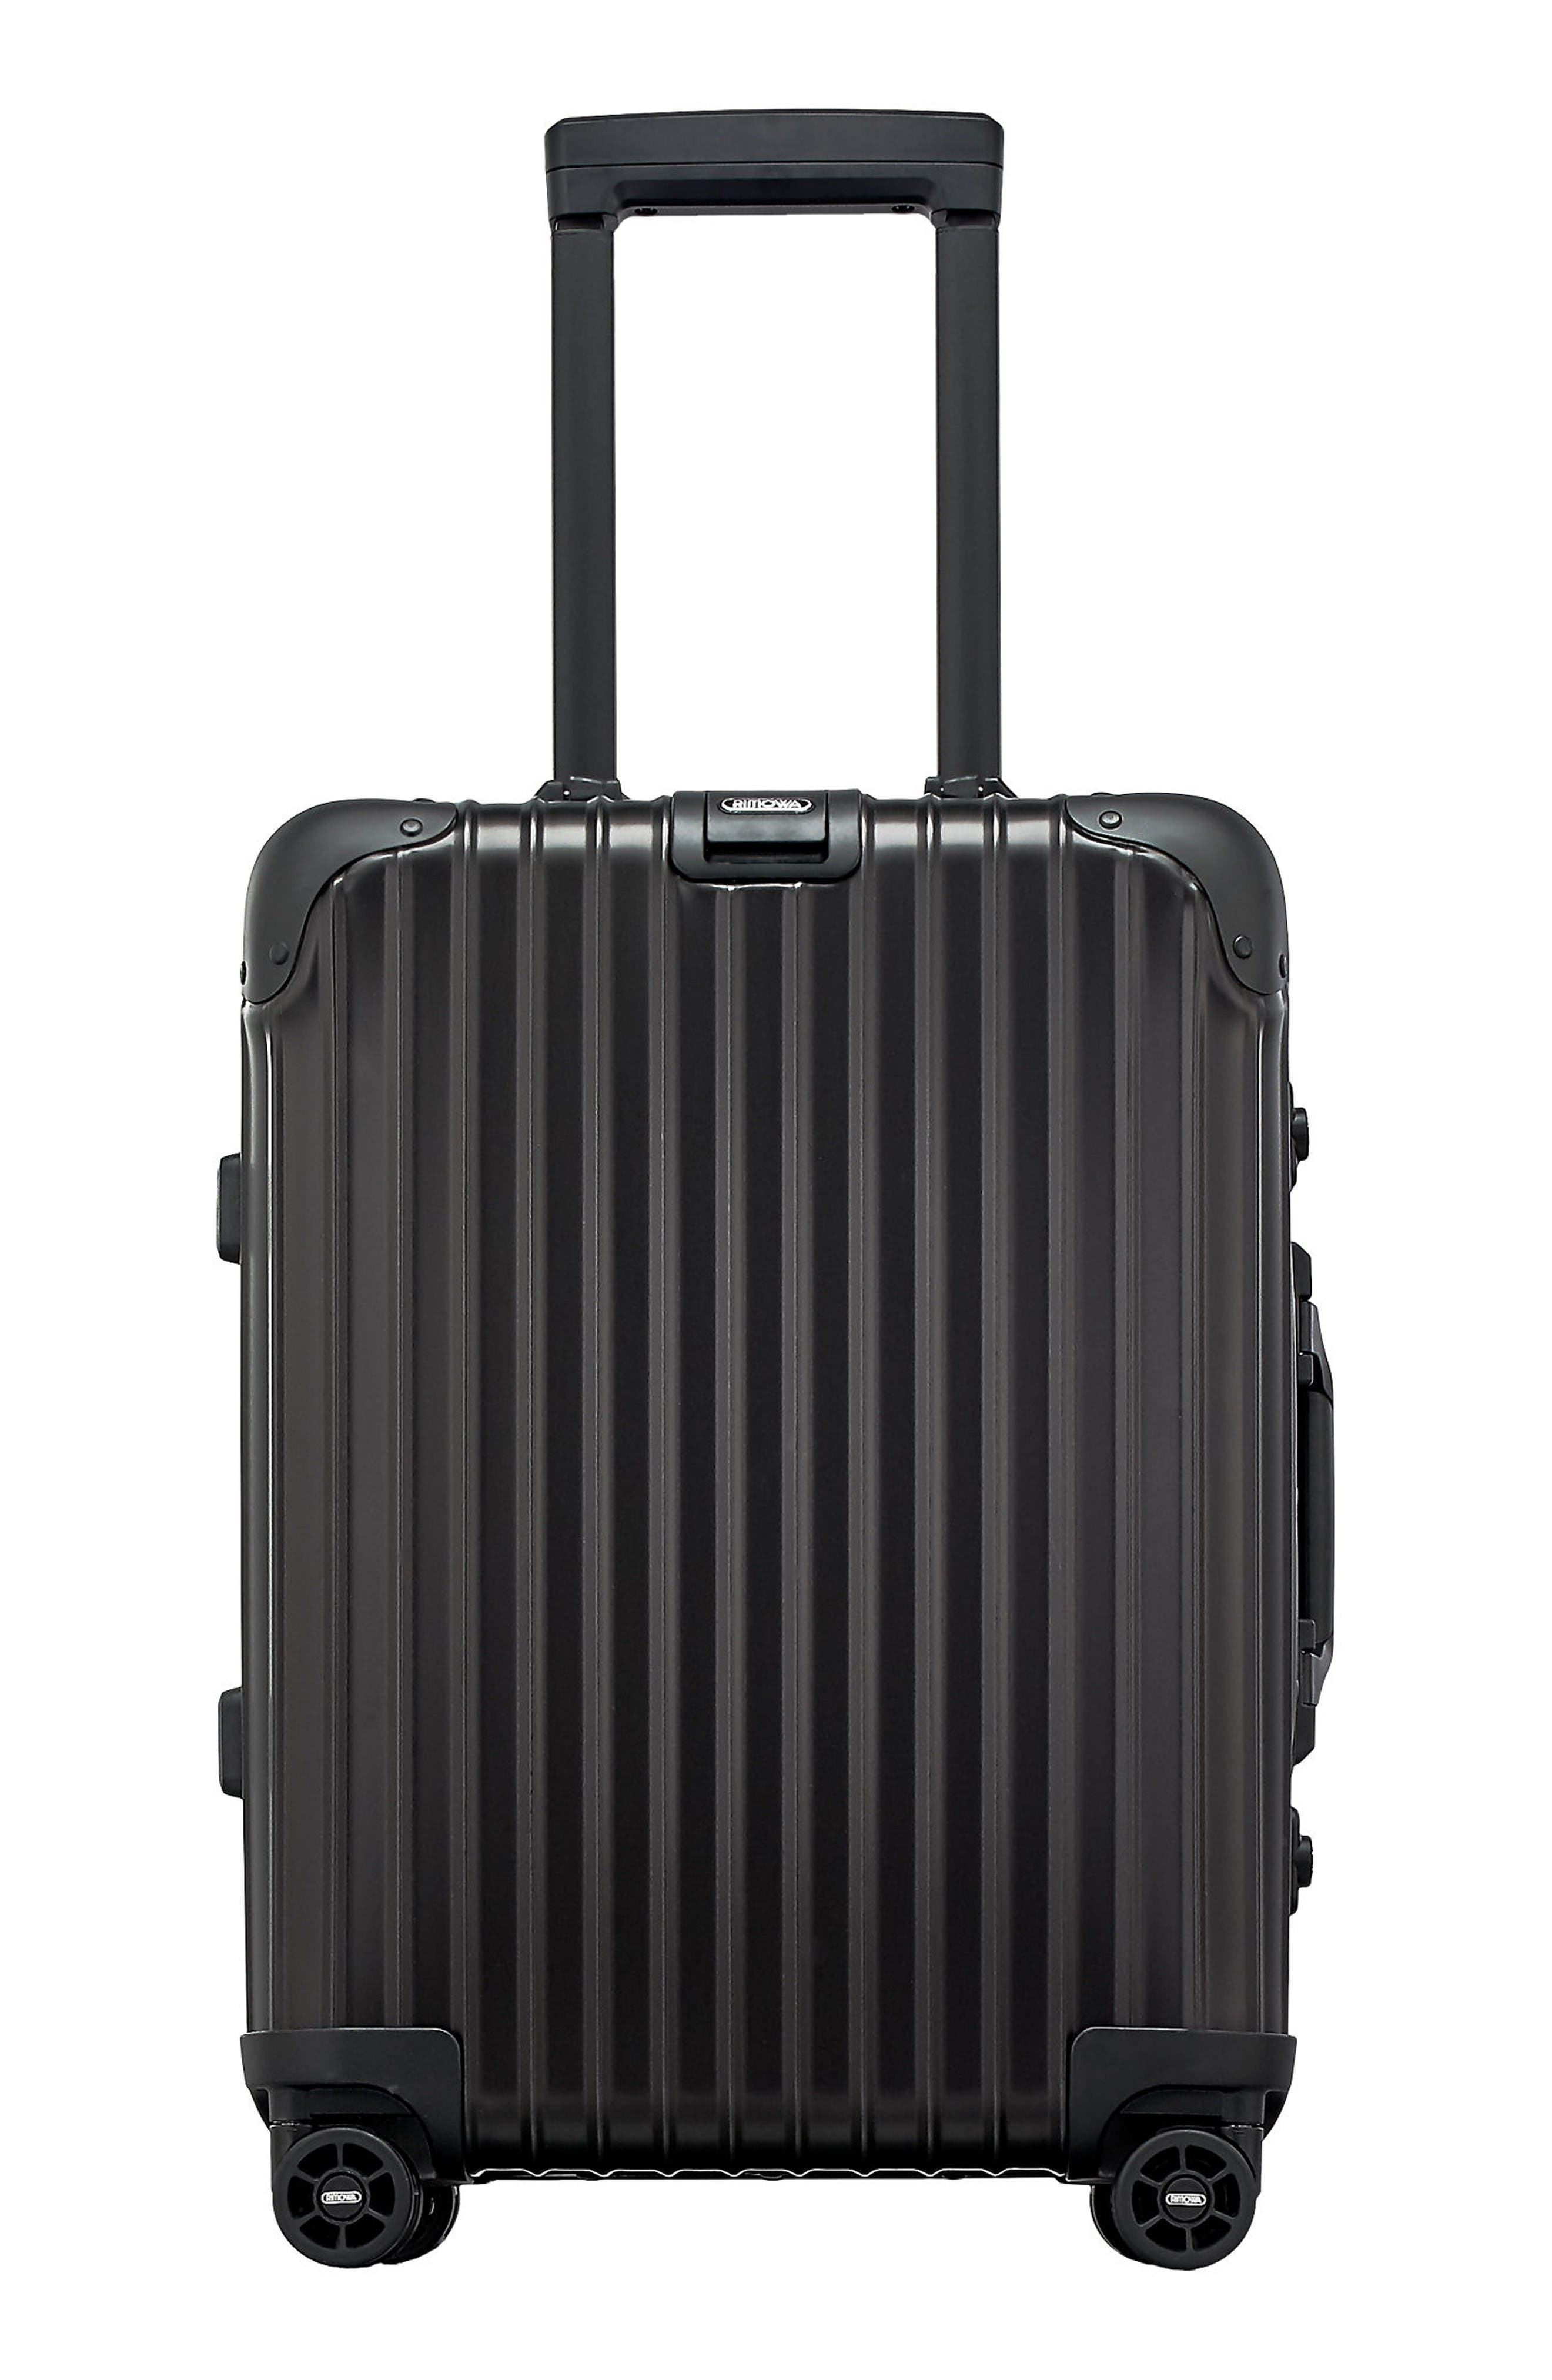 Main Image - RIMOWA Topas Stealth 22-Inch Cabin Multiwheel® Aluminum Carry-On